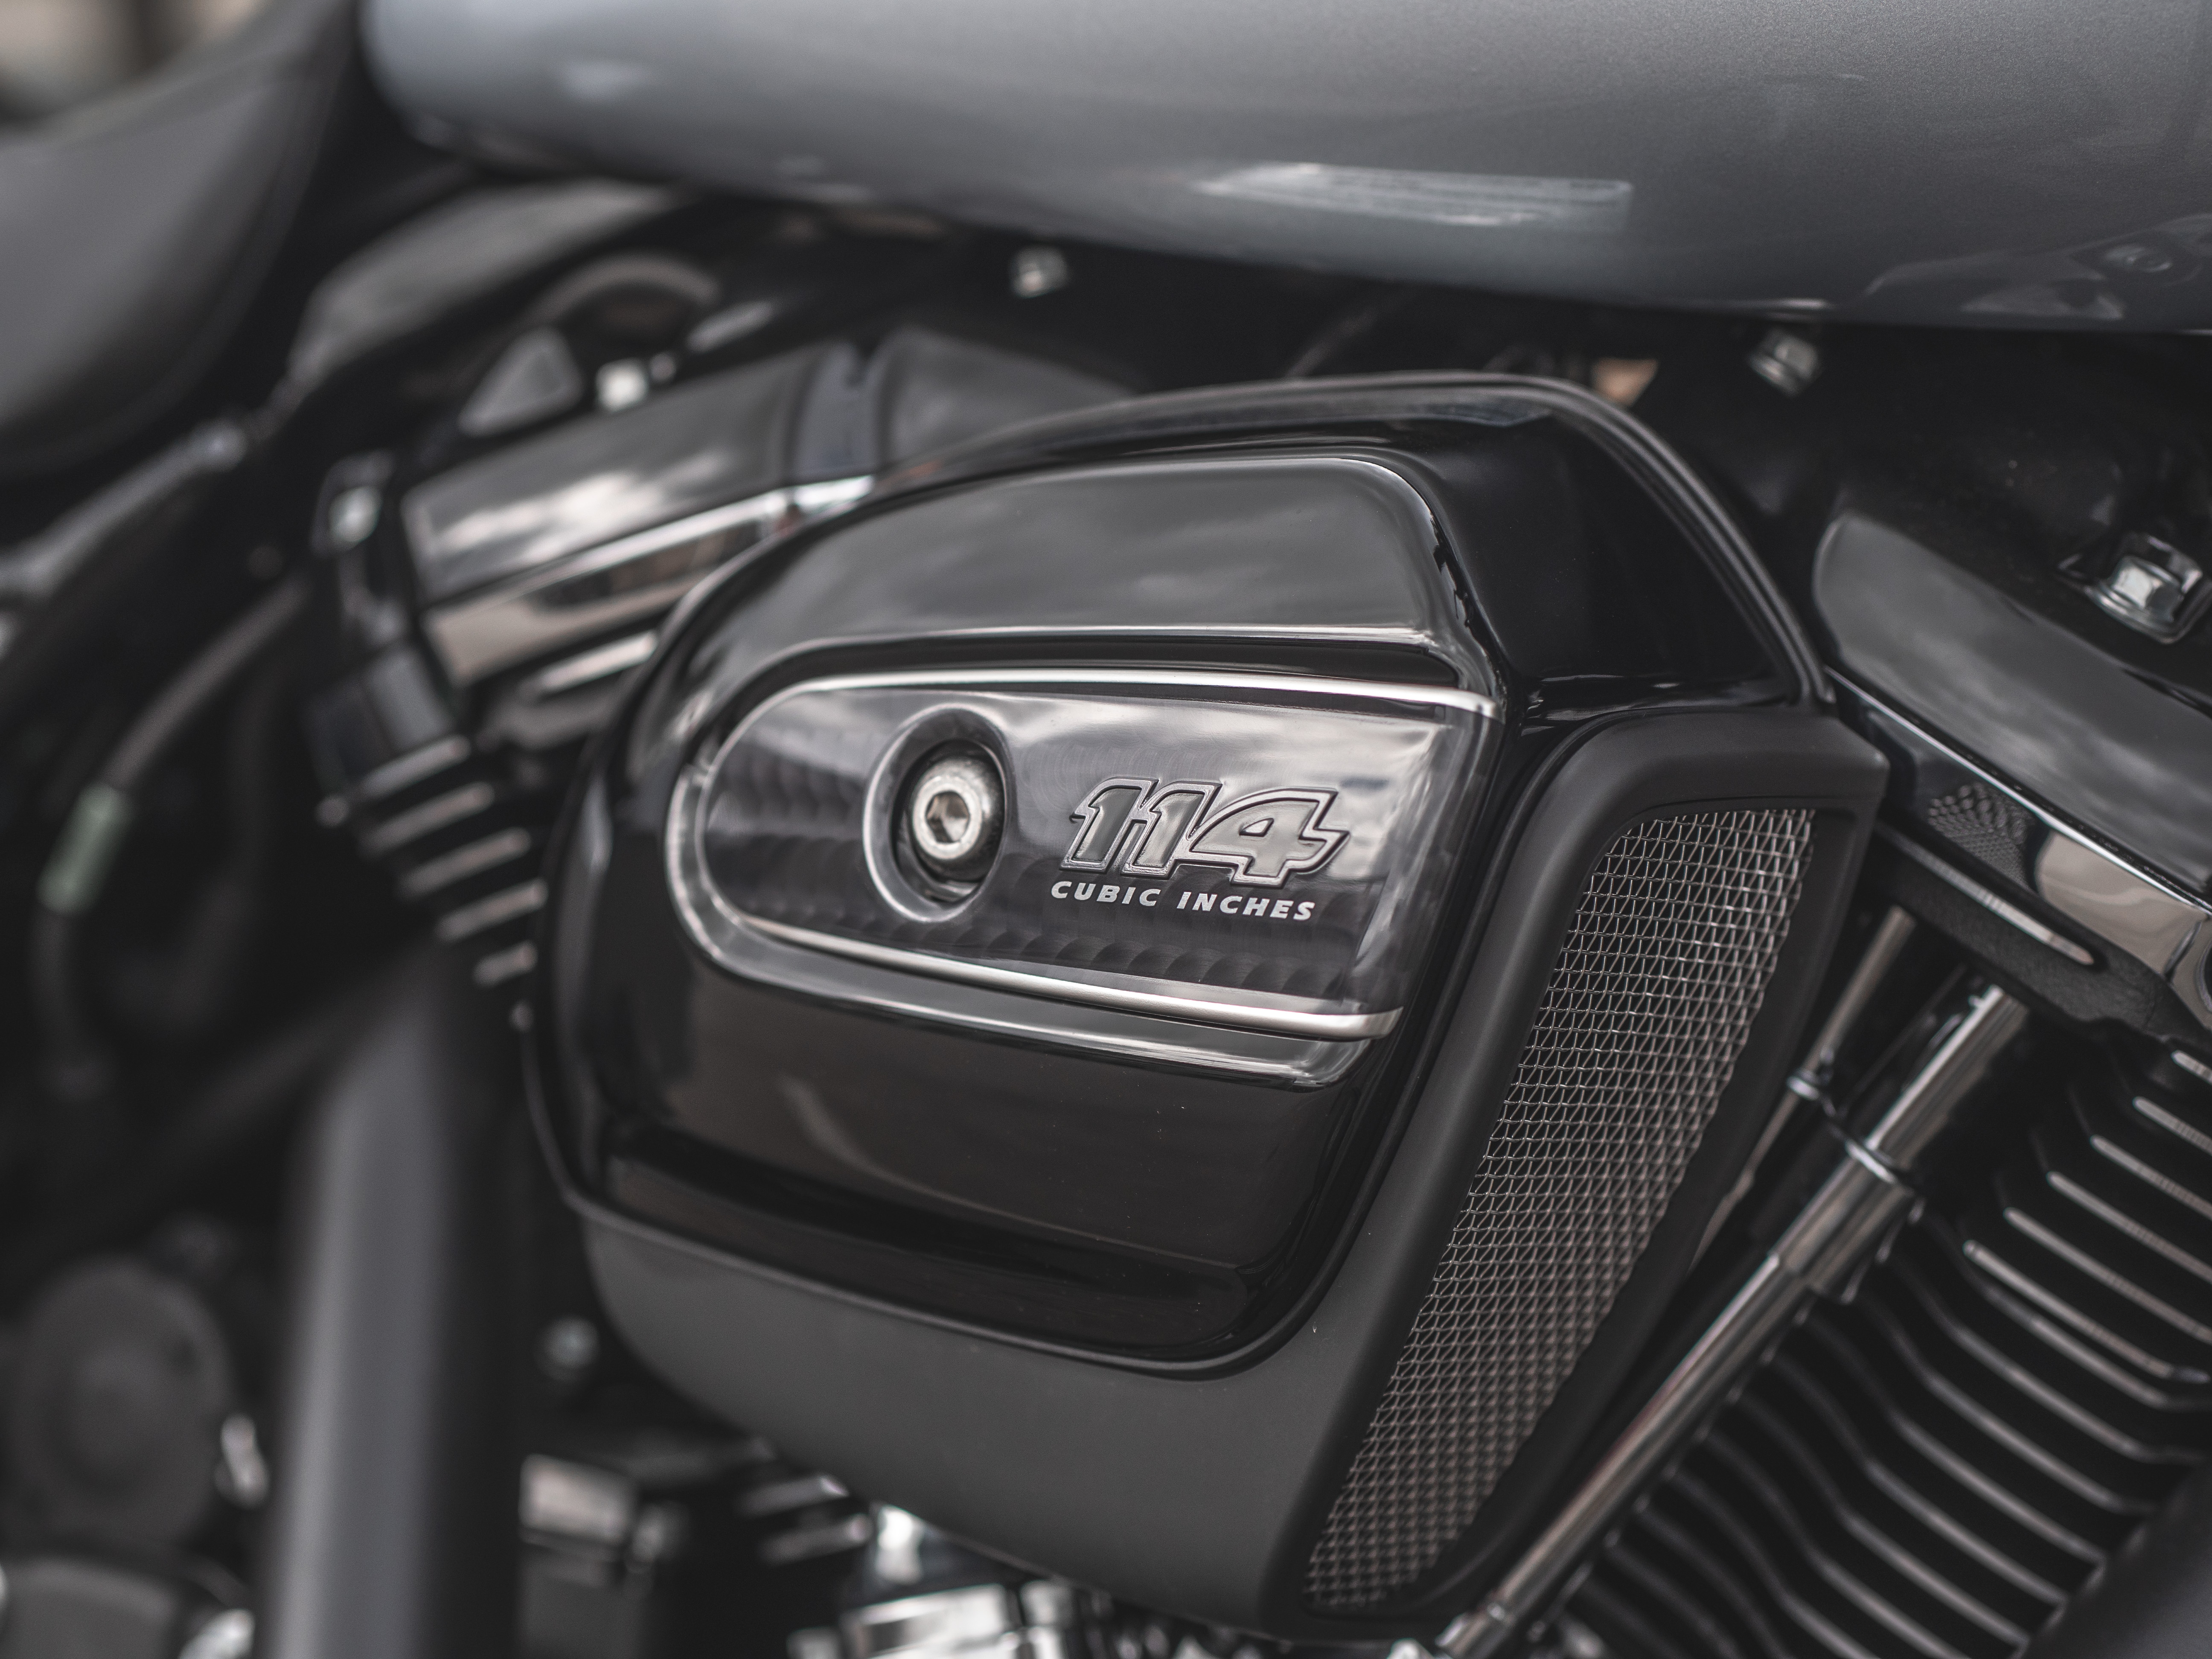 New 2019 Harley-Davidson Touring Street Glide Special